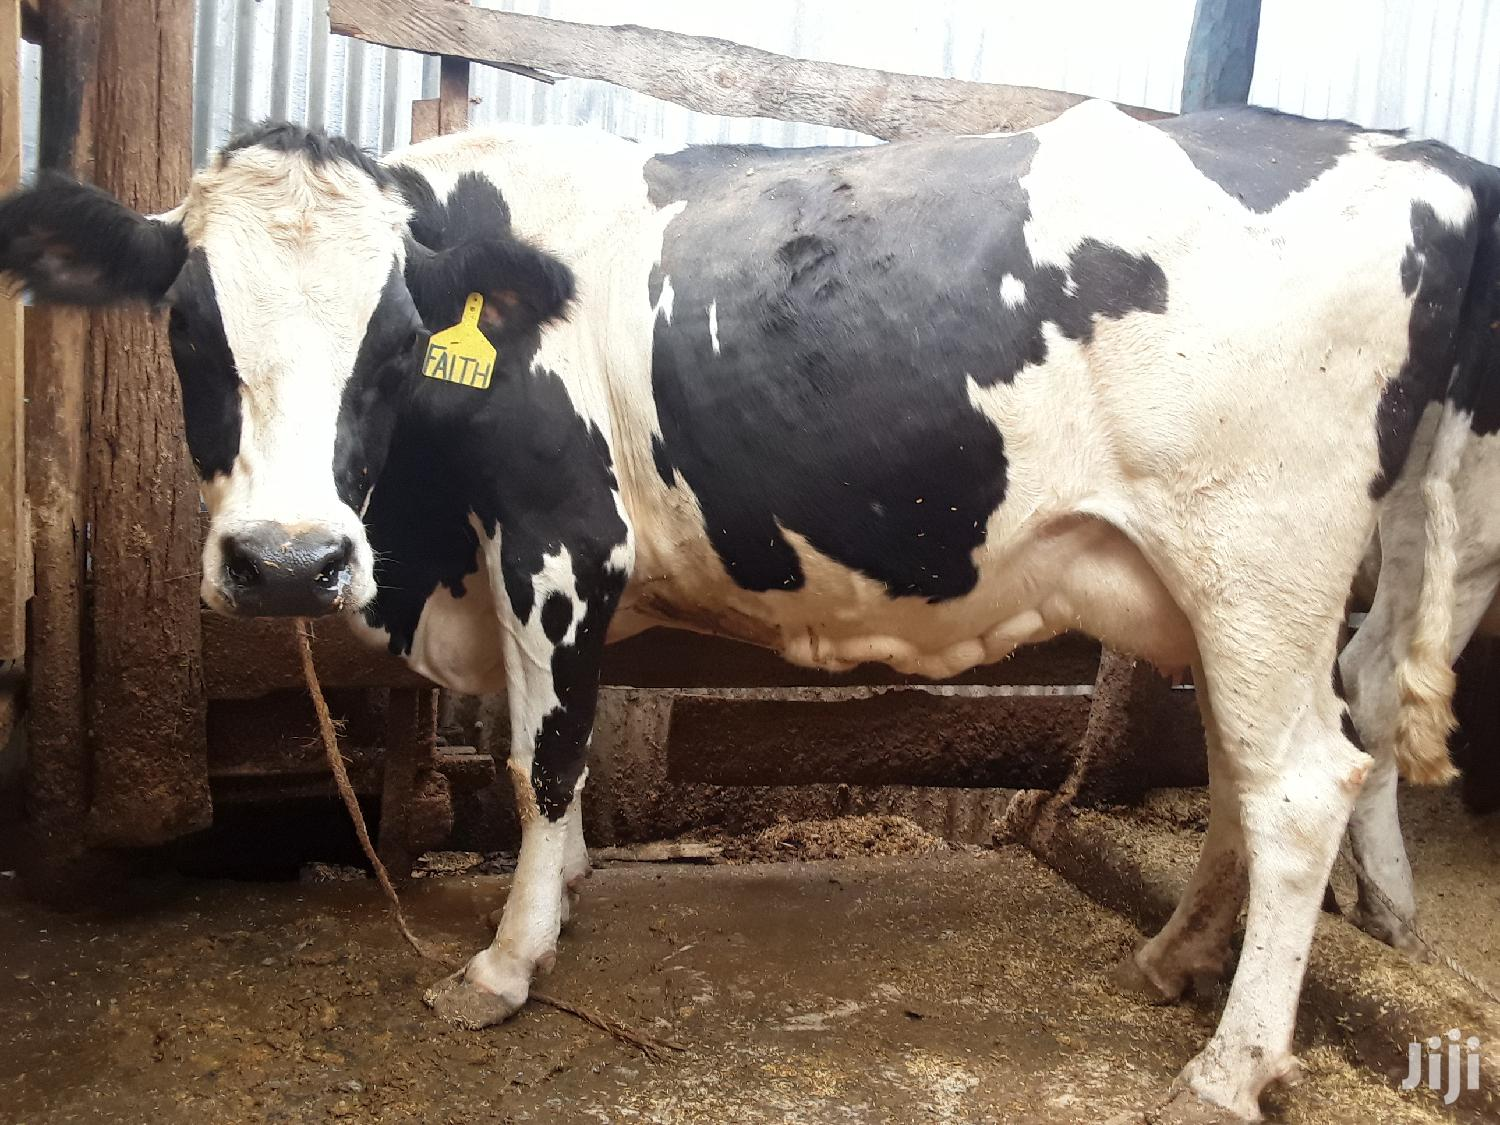 Pedigree High Yielding Dairy Cow | Livestock & Poultry for sale in Githunguri, Kiambu, Kenya